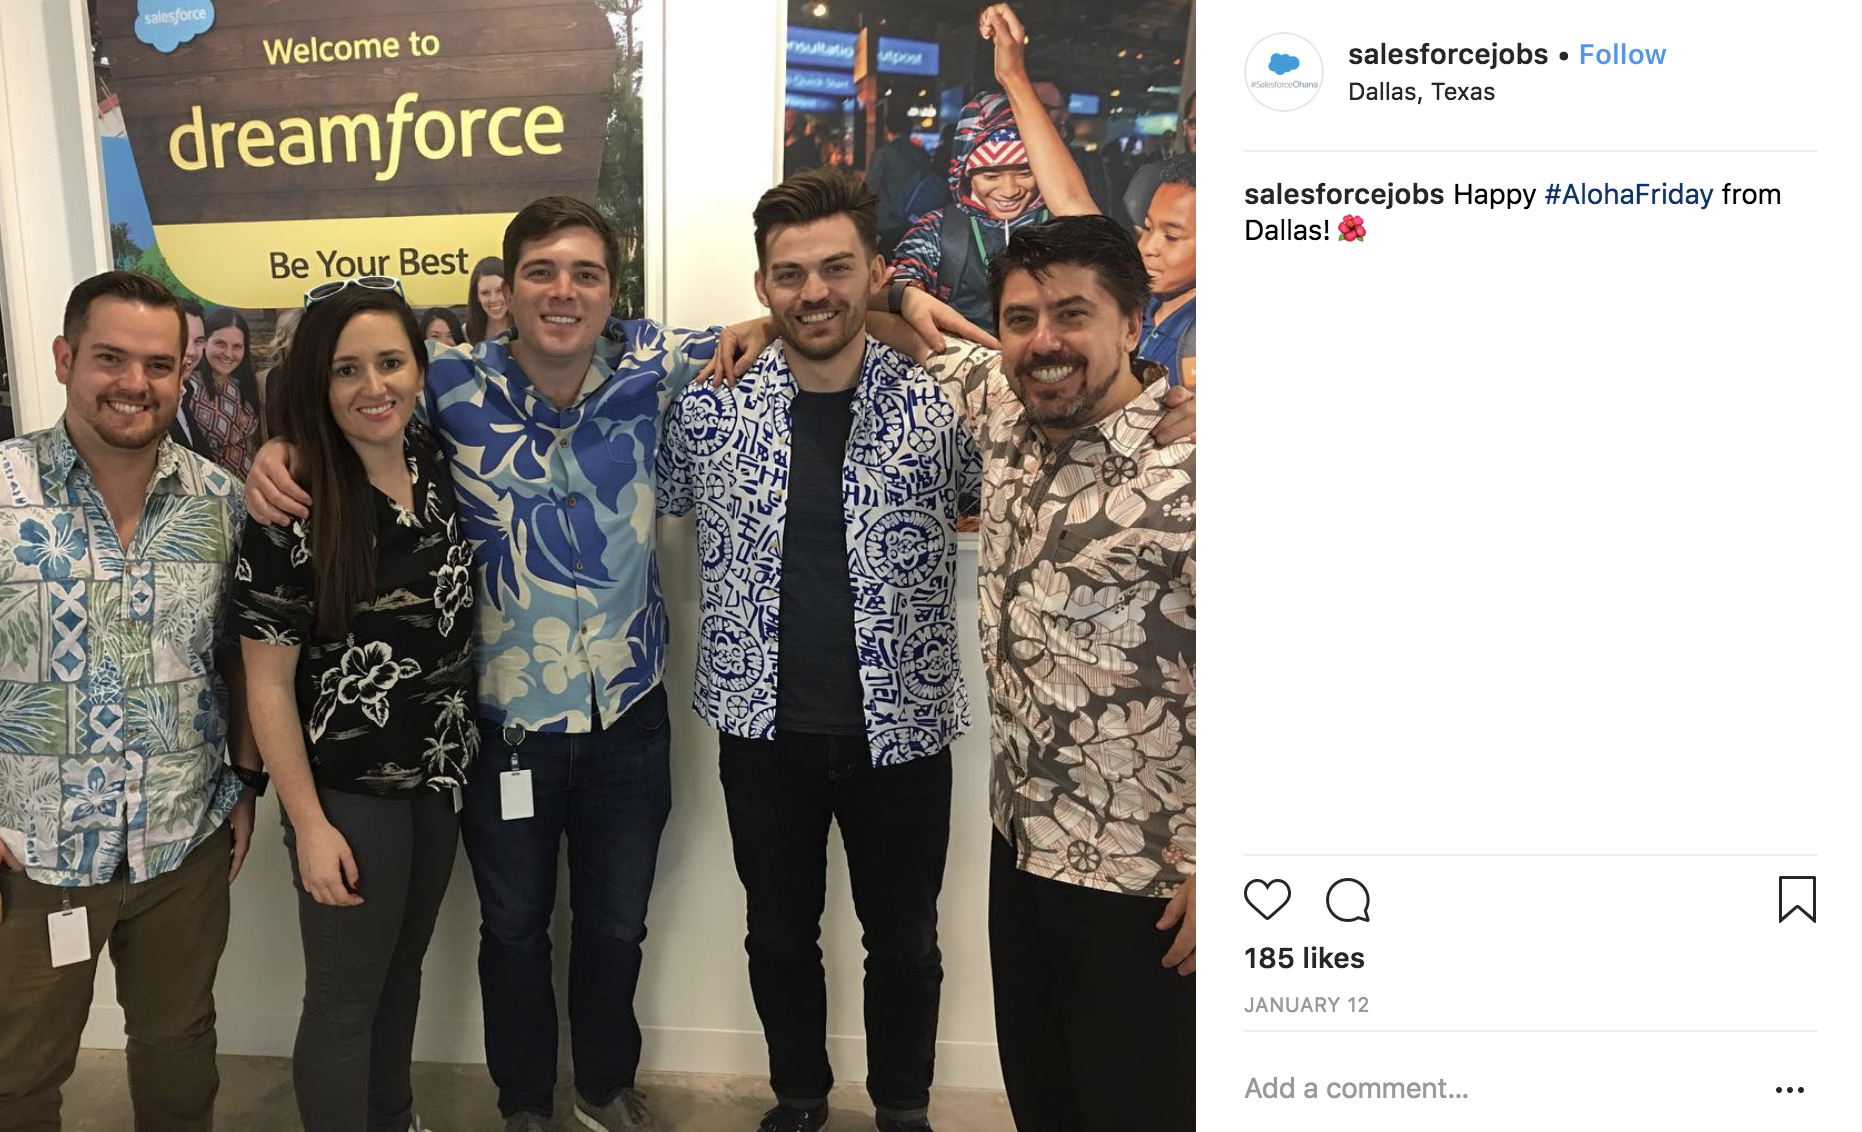 Show off employees on Instagram